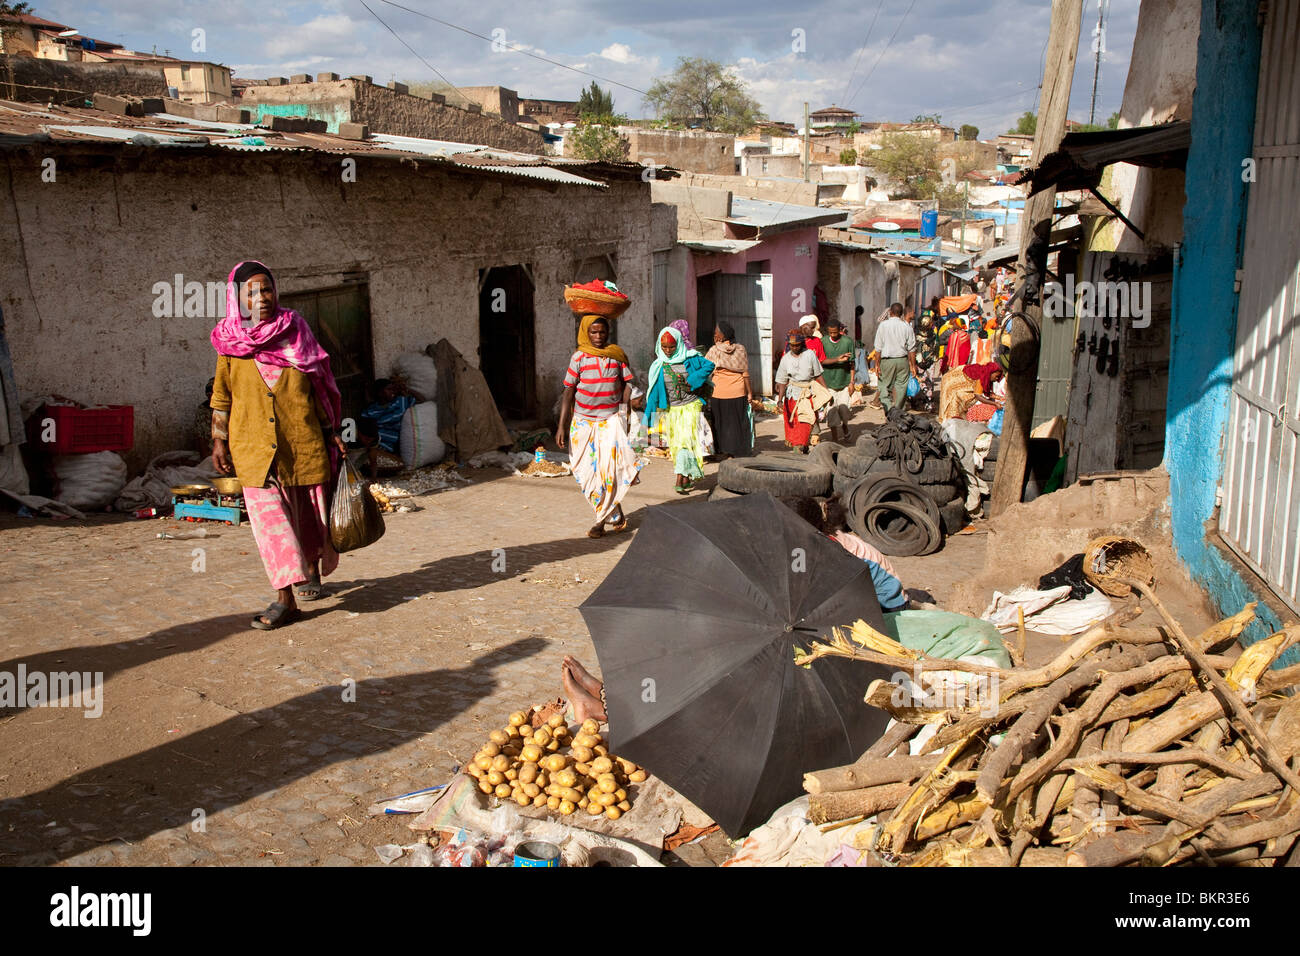 Ethiopia, Harar. Local Harari women do their early morning shopping. - Stock Image